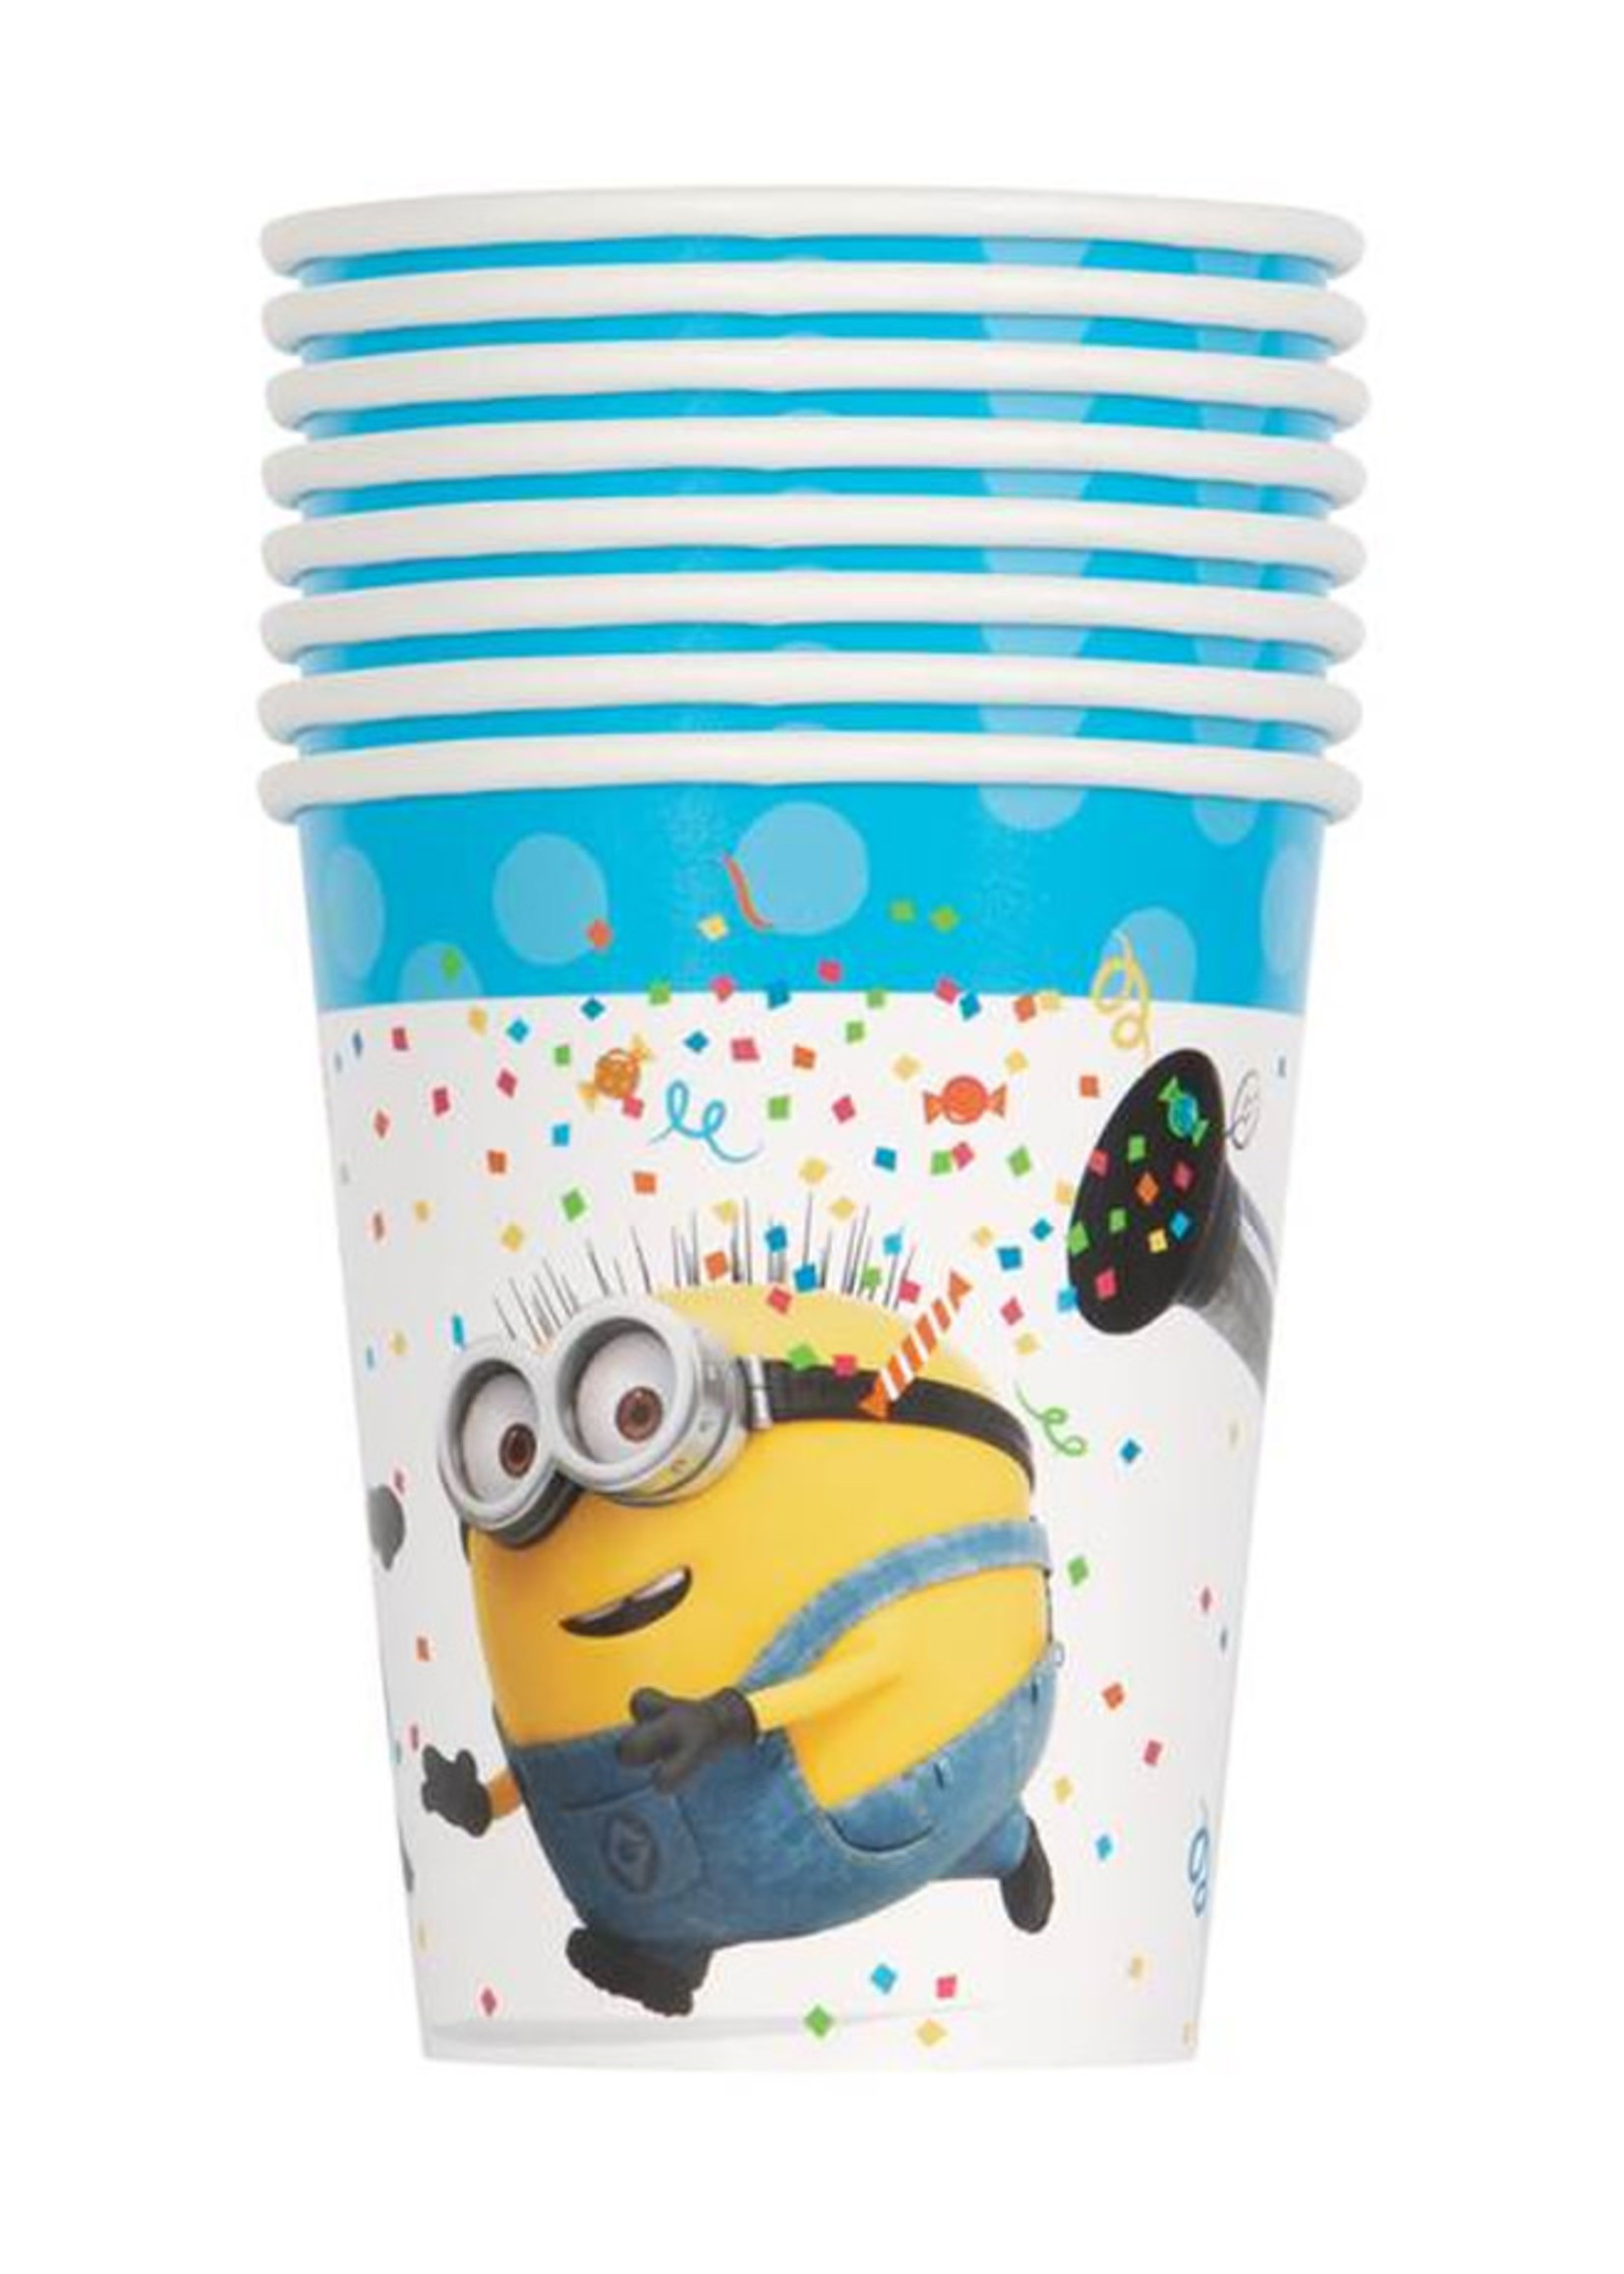 UNIQUE INDUSTRIES INC Despicable Me Minions 9oz Cups - 8ct